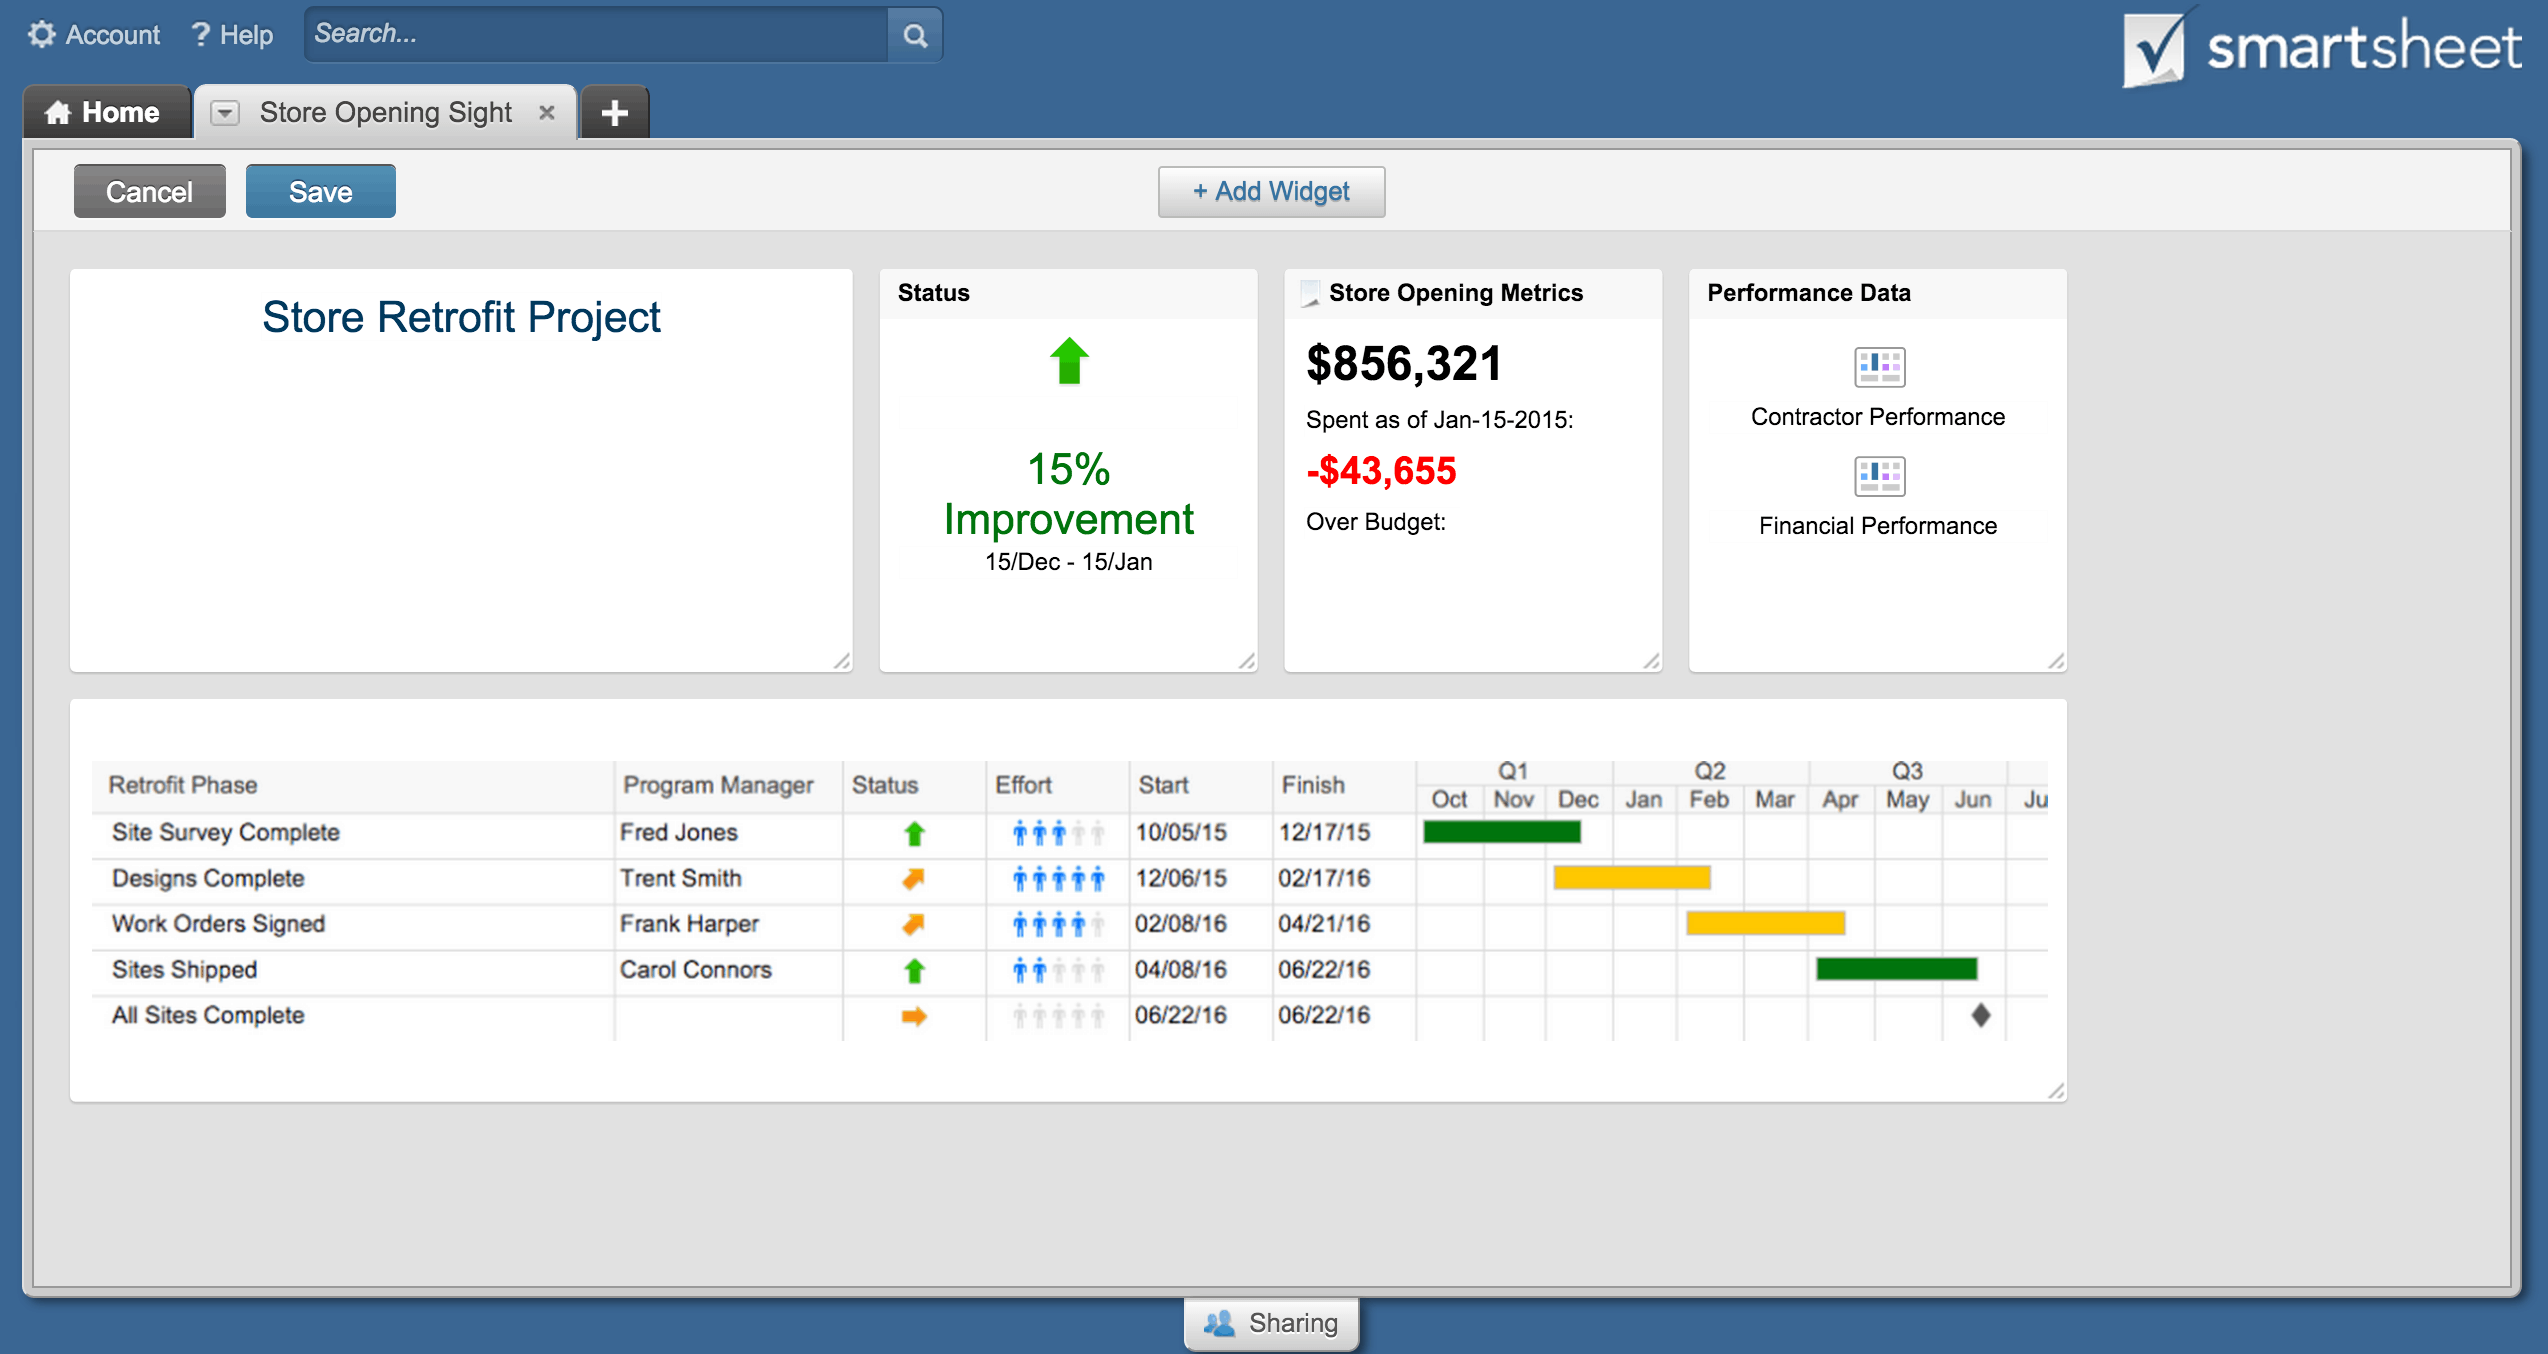 How to set up a project management dashboard in smartsheet smartsheet project management for Smartsheet dashboard